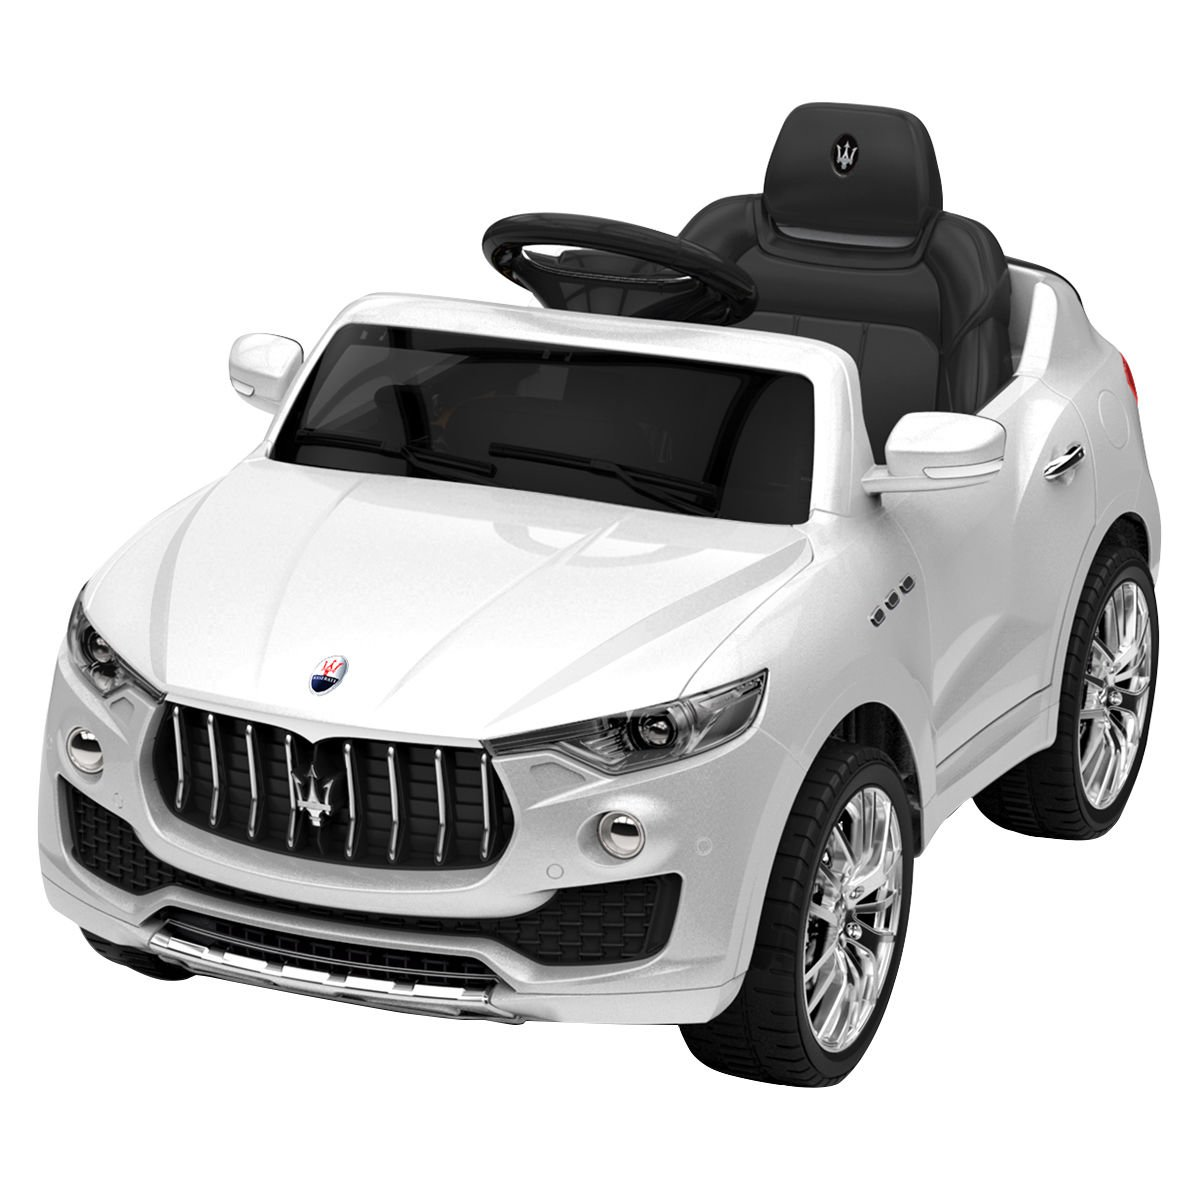 Costzon 6V Licensed Maserati Kids Ride On Car Opening Doors with Parental Remote Control, Swing Function (White)